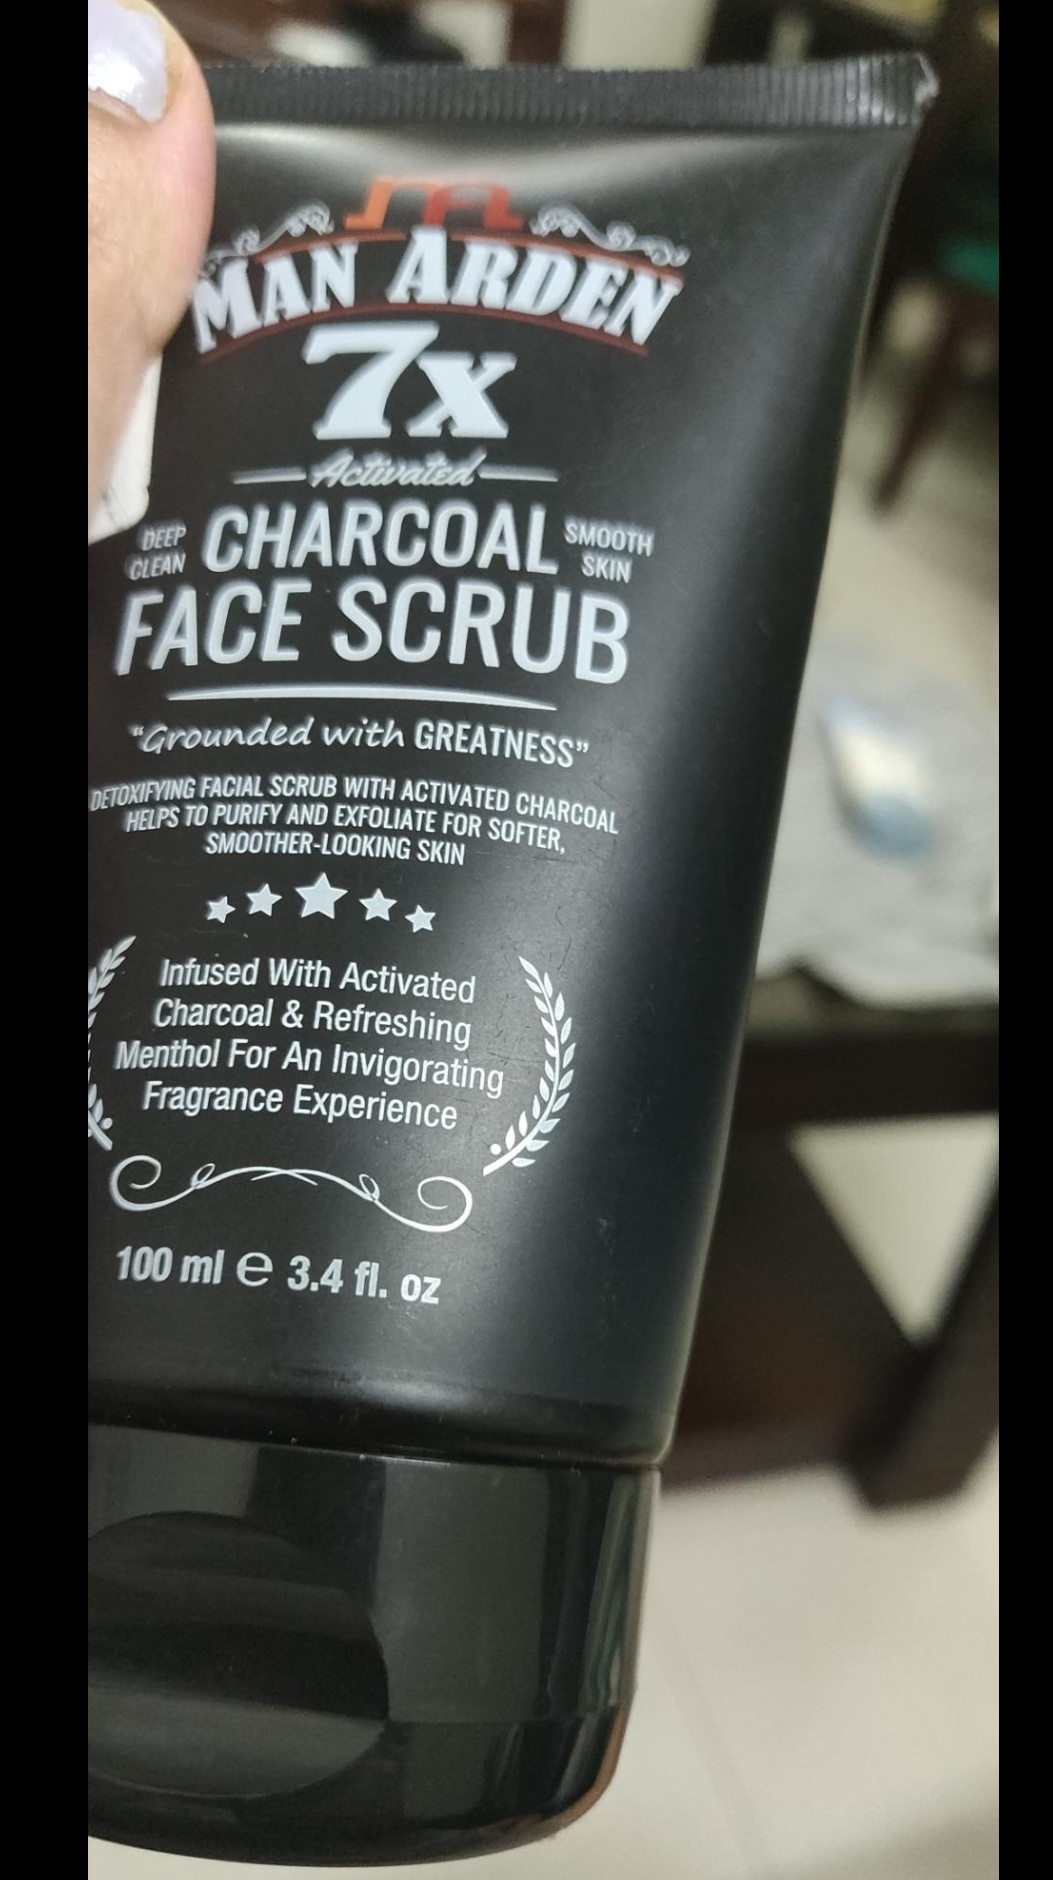 Man Arden 7X Activated Charcoal Face Scrub-Detoxify your skin with Charcoal Scrub-By eesha_srivastava